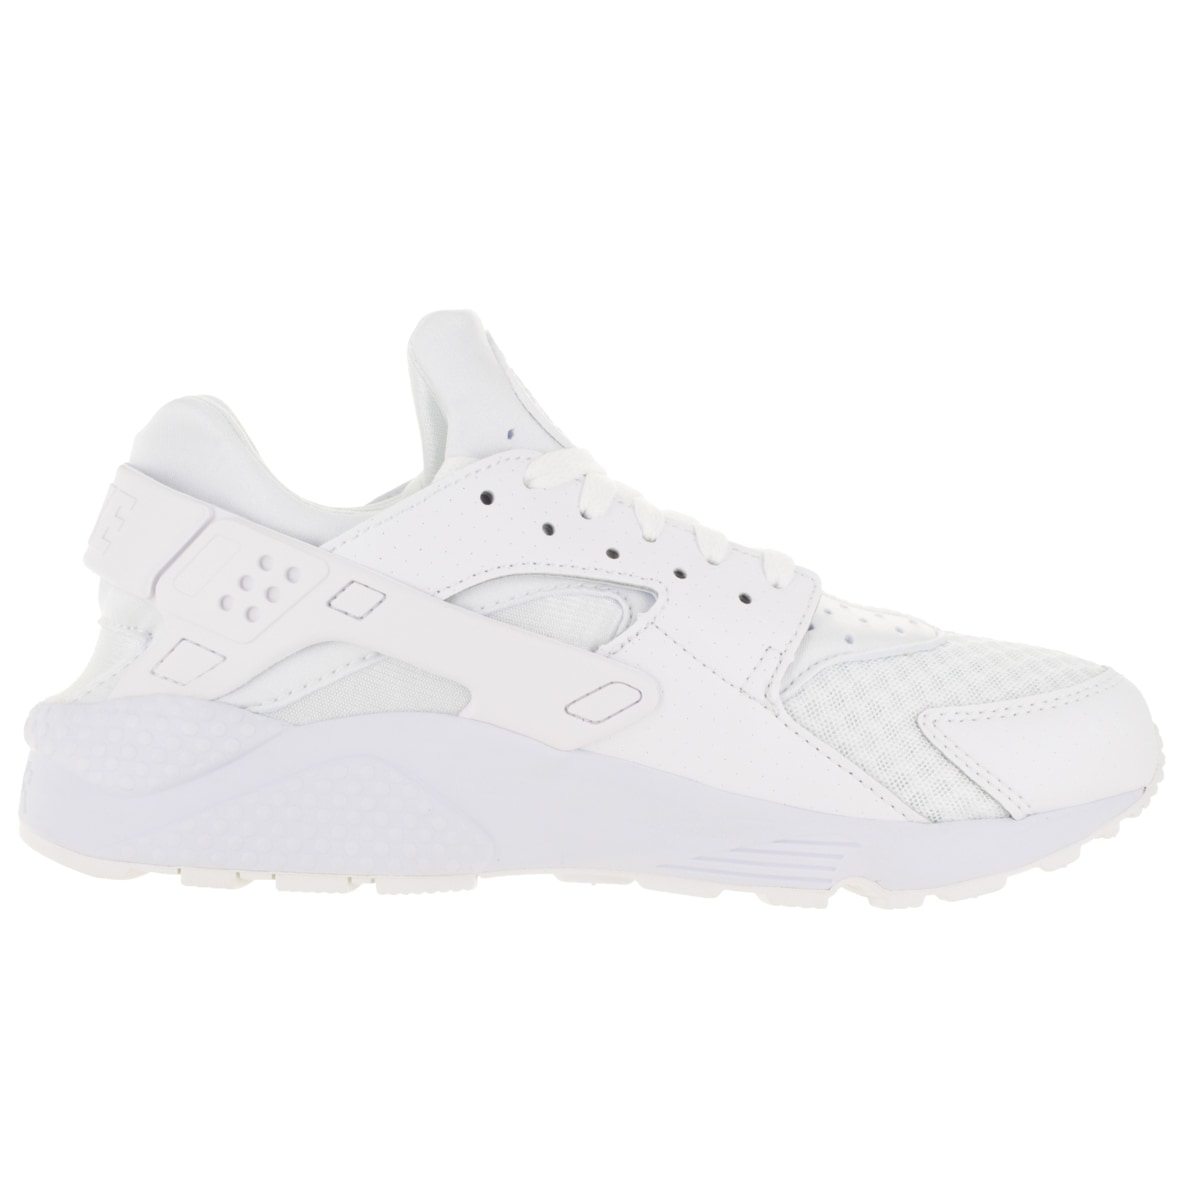 outlet store 96056 755a1 Shop Nike Men s Air Huarache White White Pure Platinum Running Shoe - Free  Shipping Today - Overstock - 13395237